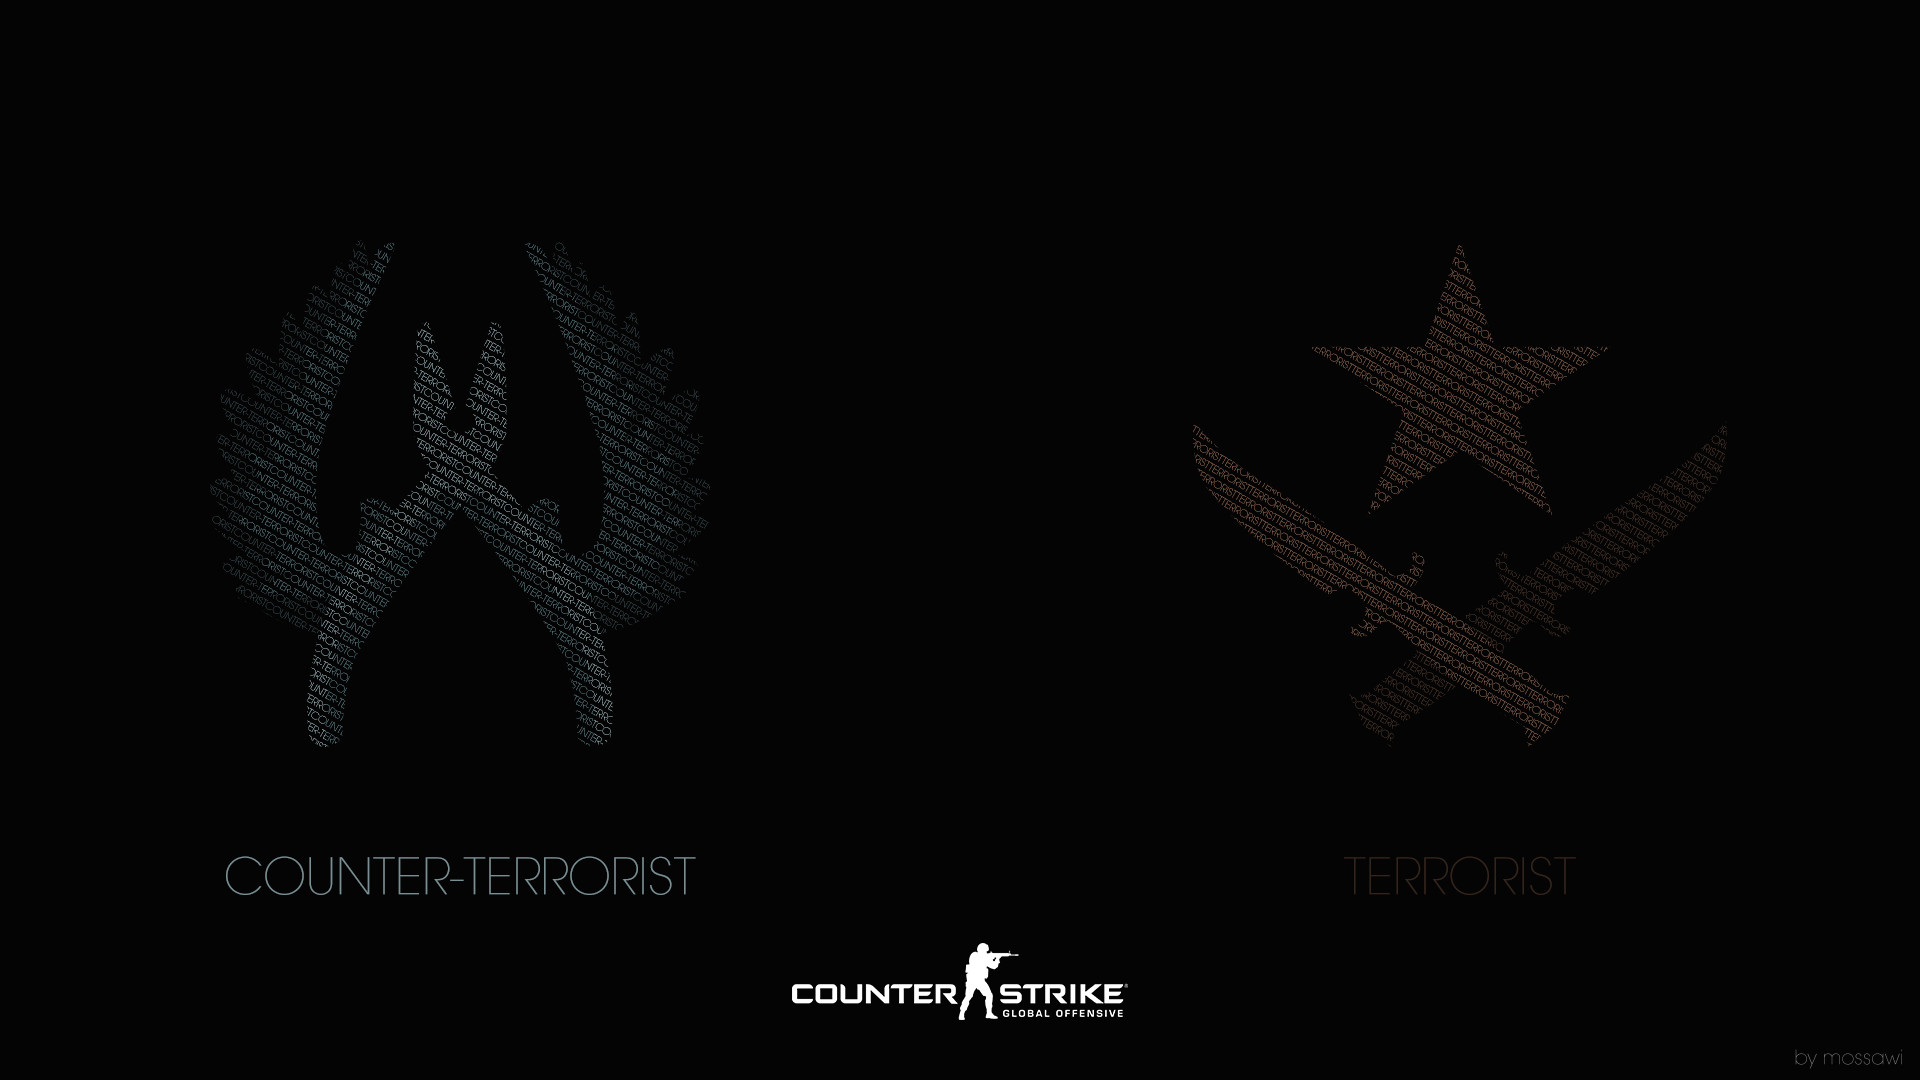 https://mossawi.nl/csgo/assets/images/original/ct_t_background.png